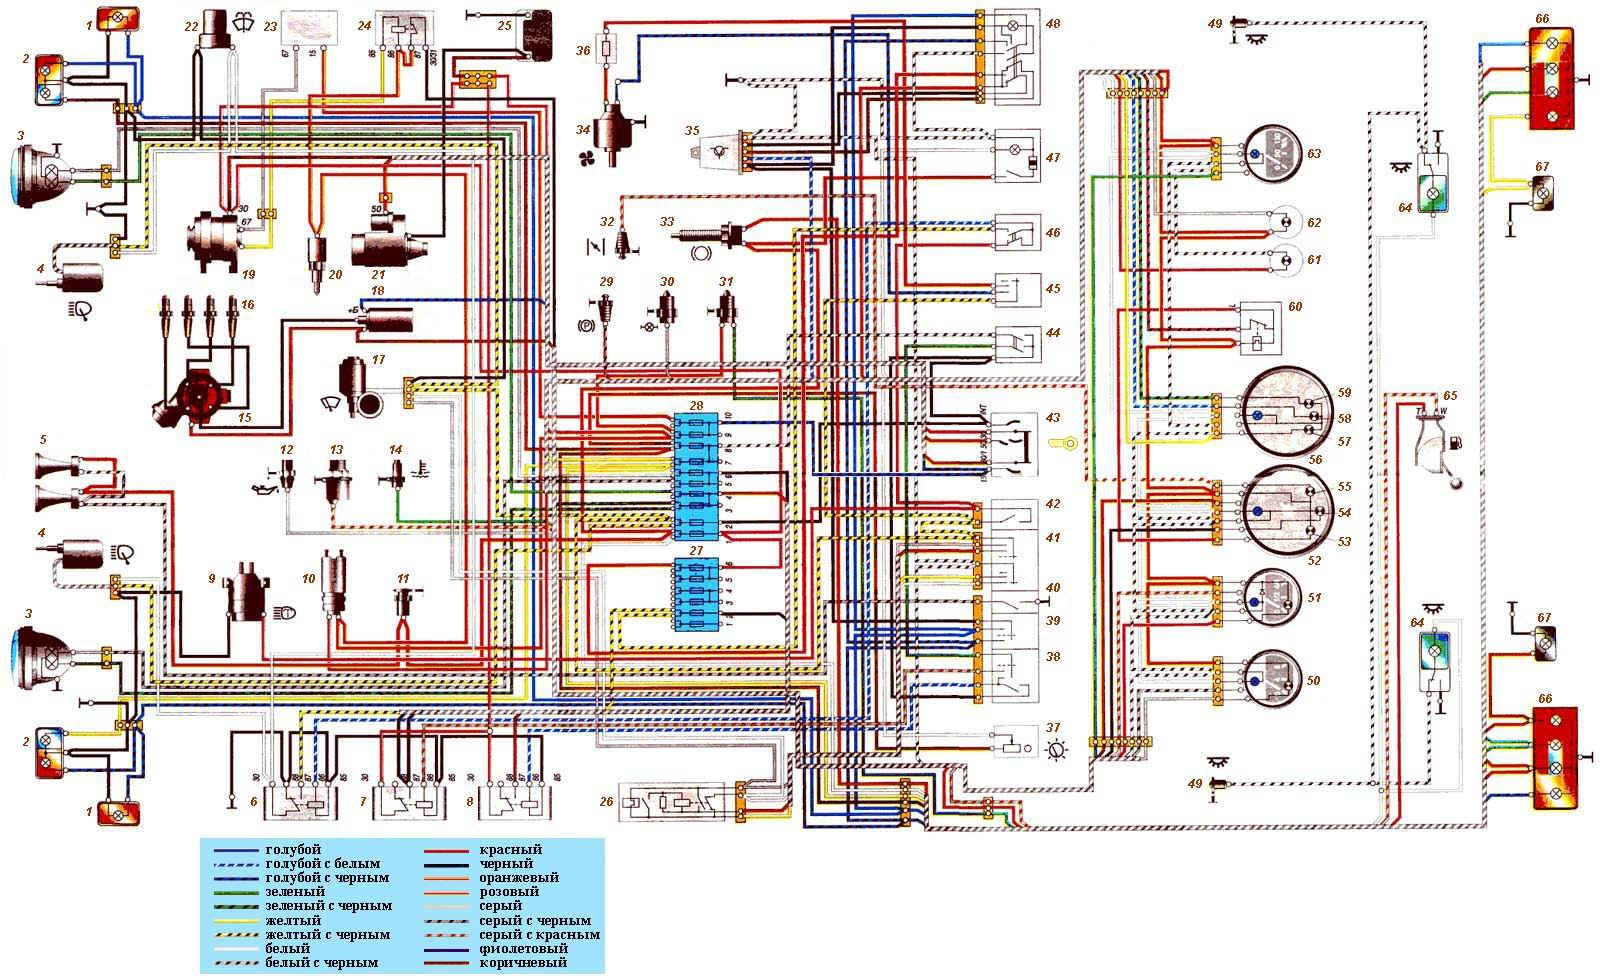 Image result for console wiring diagram | wiring diagram | Pinterest ...